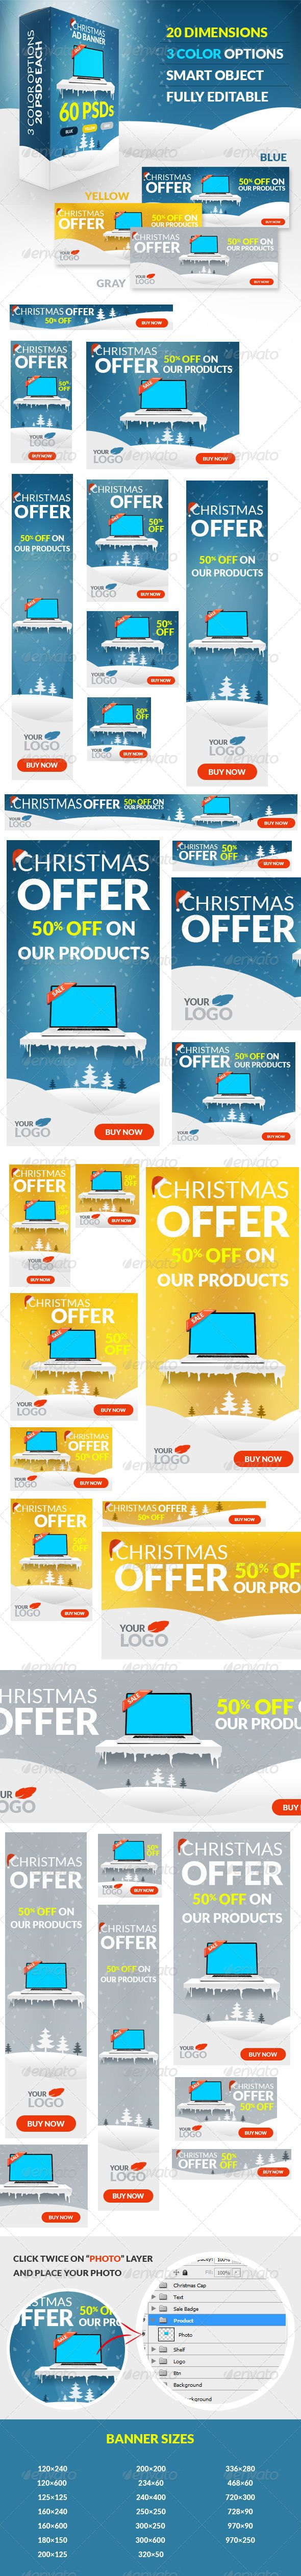 Christmas Offer Web Ad Banners Template PSD | Buy and Download: http://graphicriver.net/item/christmas-offer-web-ad-banners/6283626?WT.ac=category_thumb&WT.z_author=ashoka27&ref=ksioks